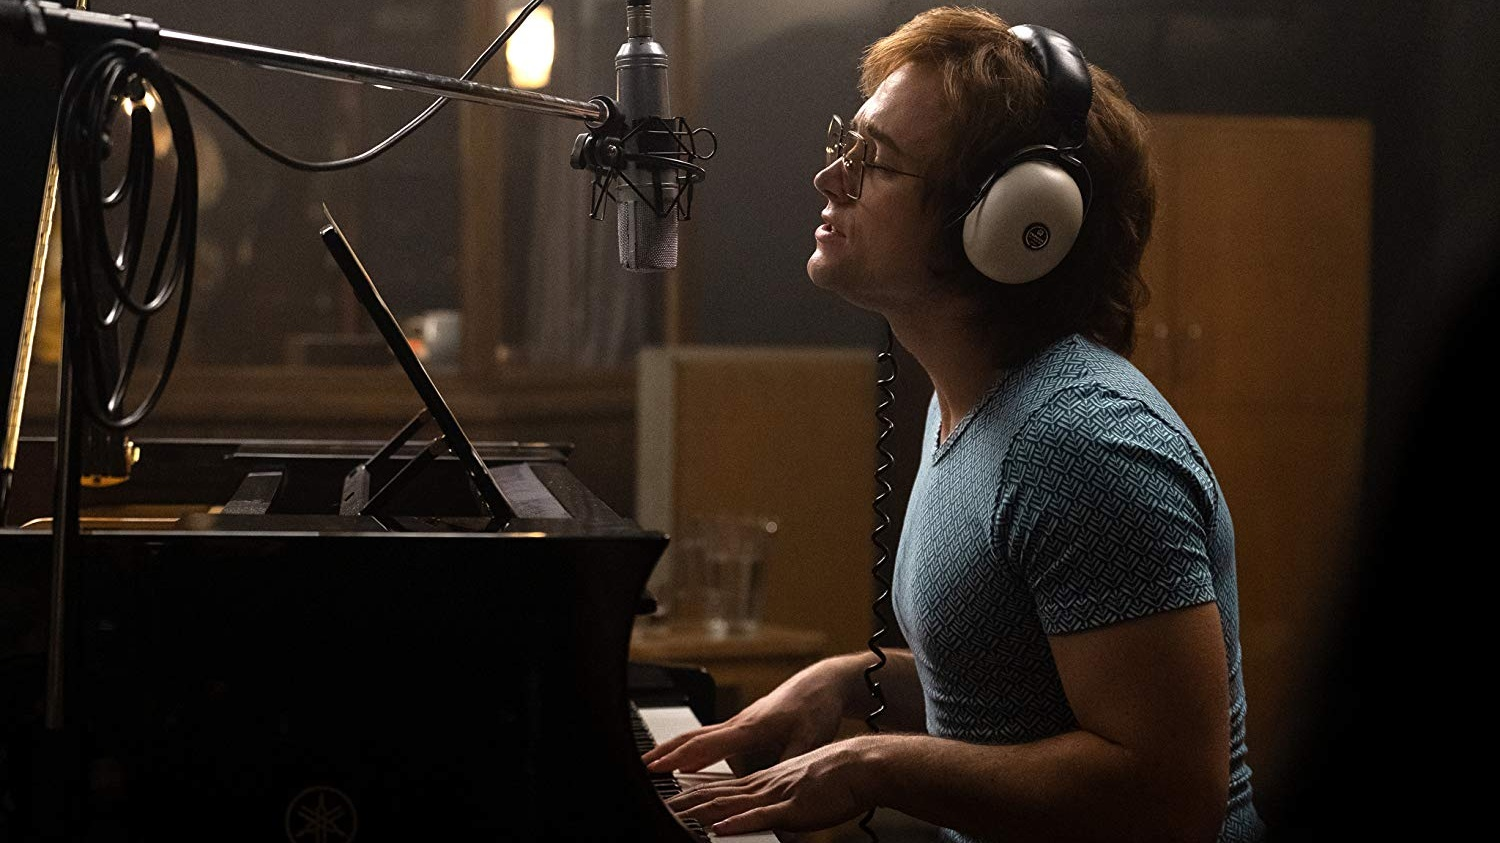 rocketman, elton john, taron egerton, jamie bell, 2019, best of 2019, best movies of 2019, 2019 in film, 2019 movies, musicals, biopic,